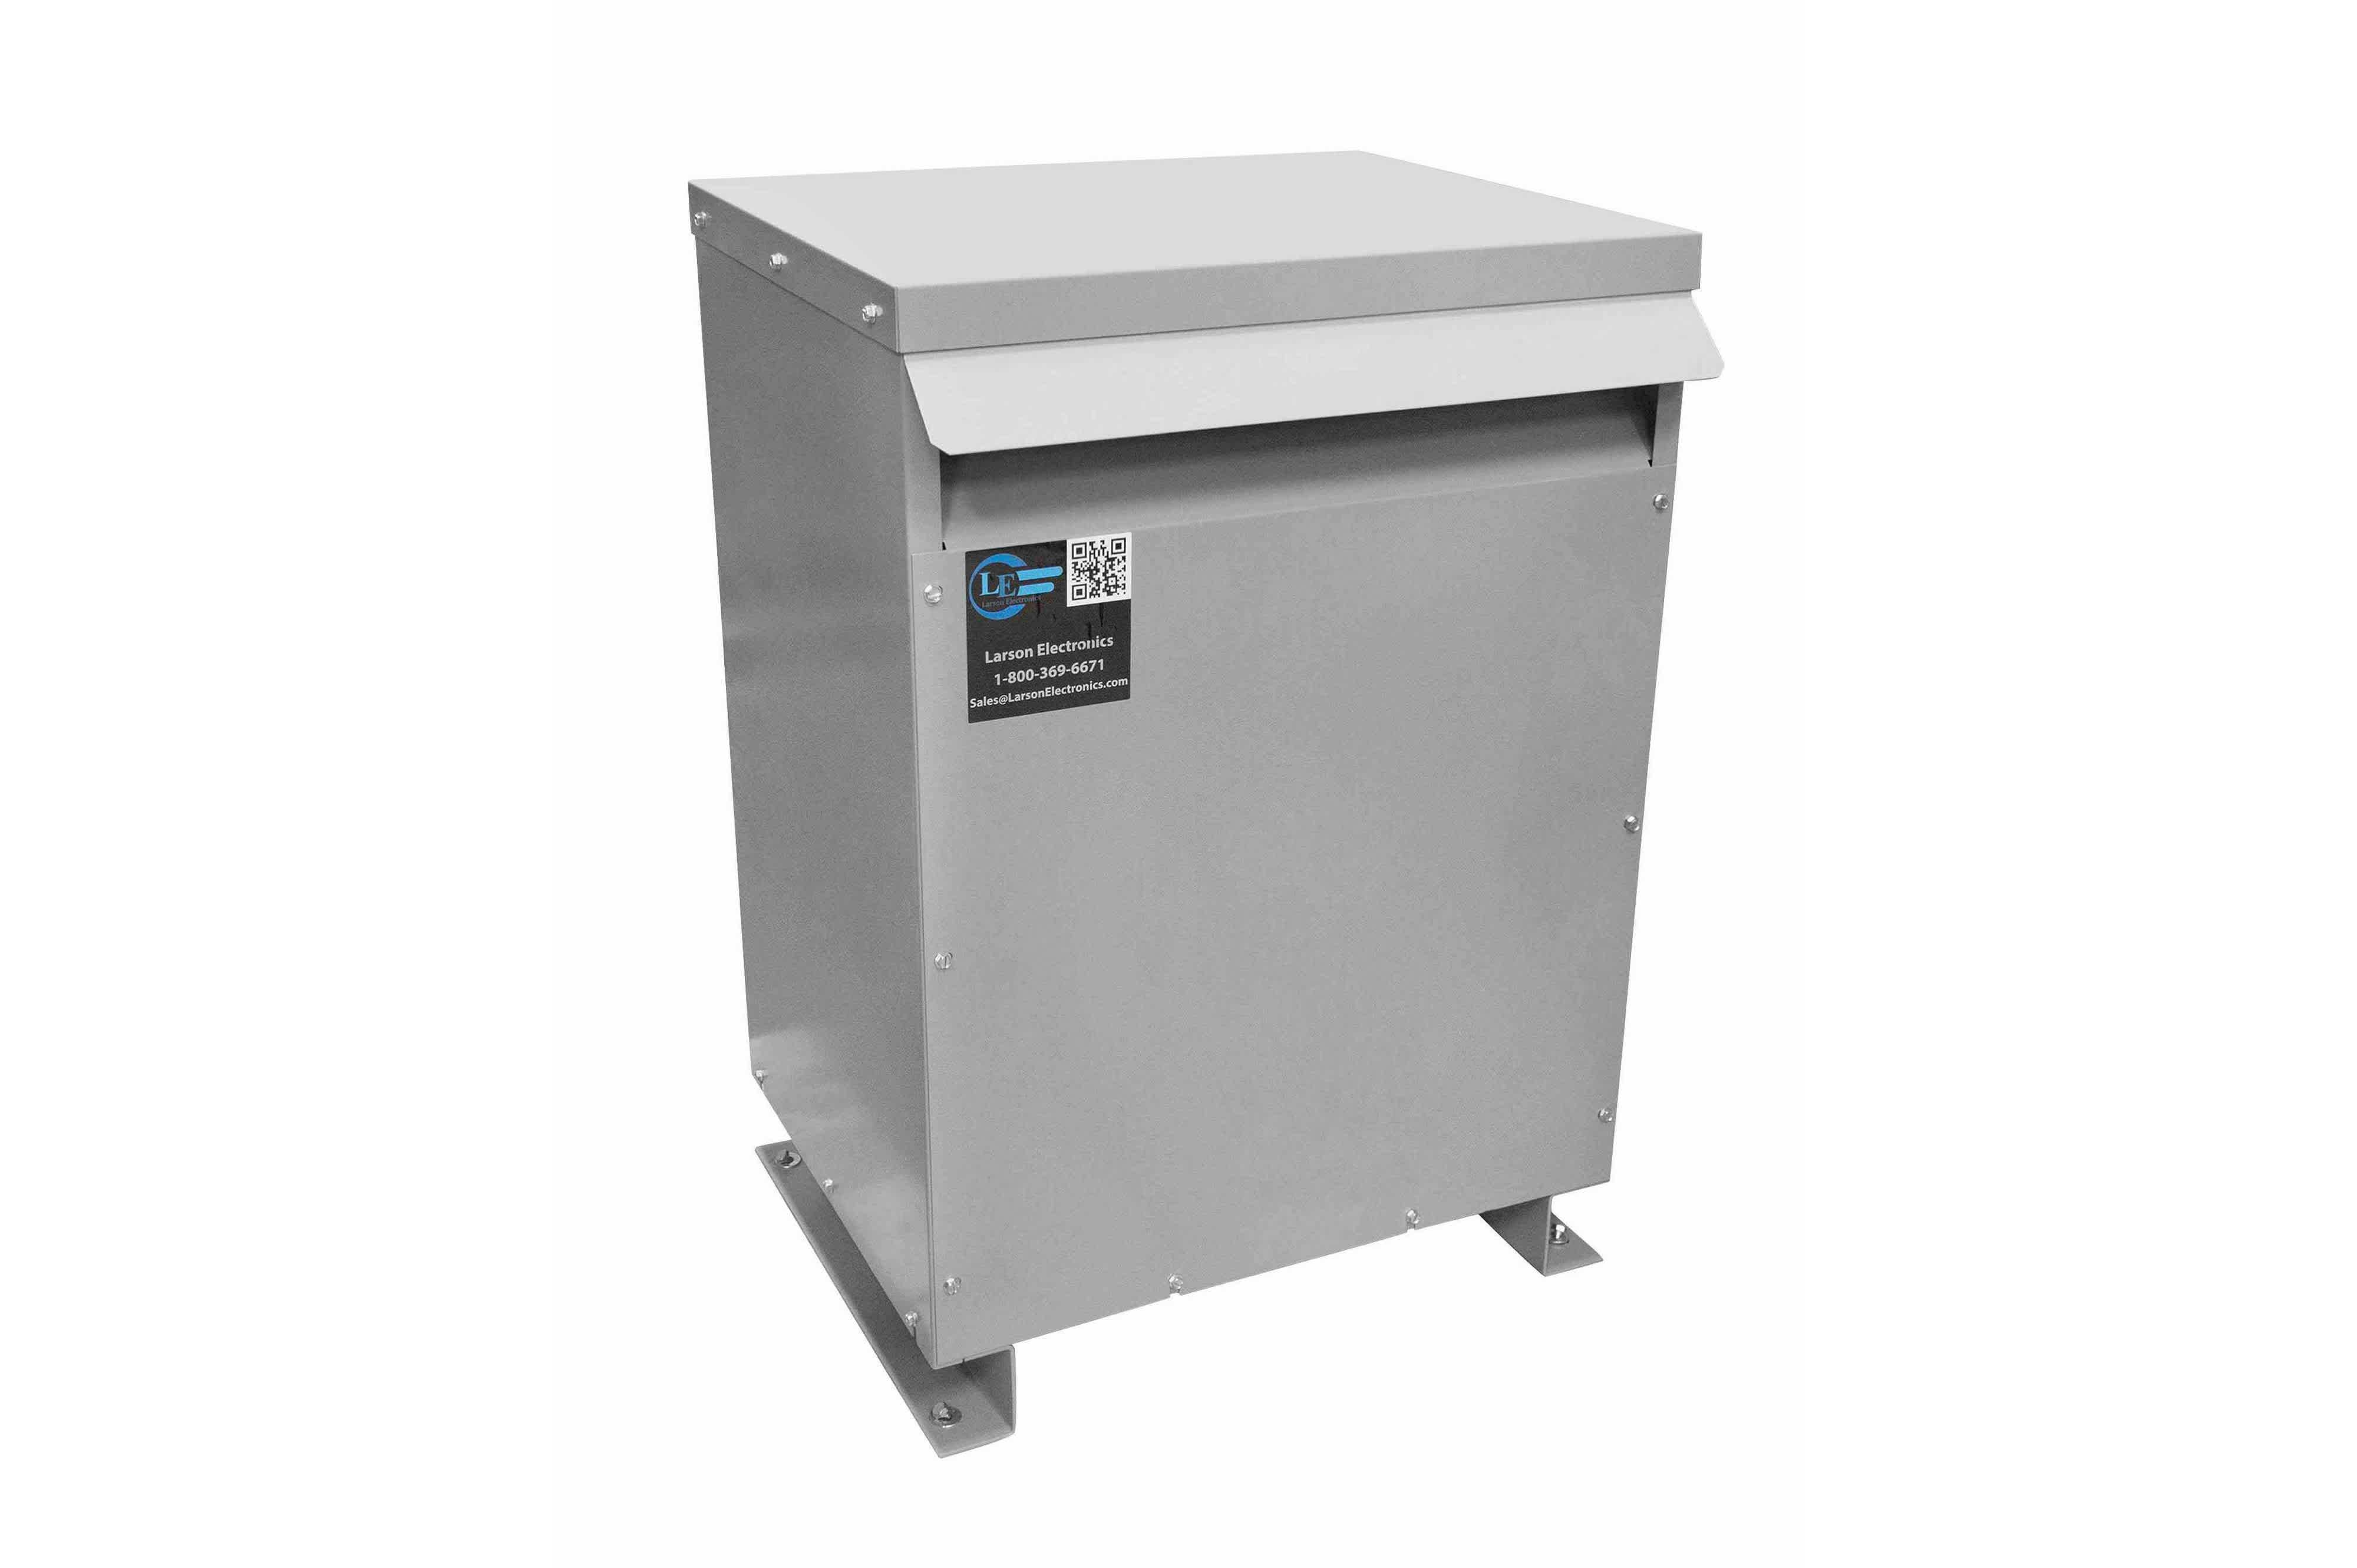 250 kVA 3PH Isolation Transformer, 208V Delta Primary, 400V Delta Secondary, N3R, Ventilated, 60 Hz